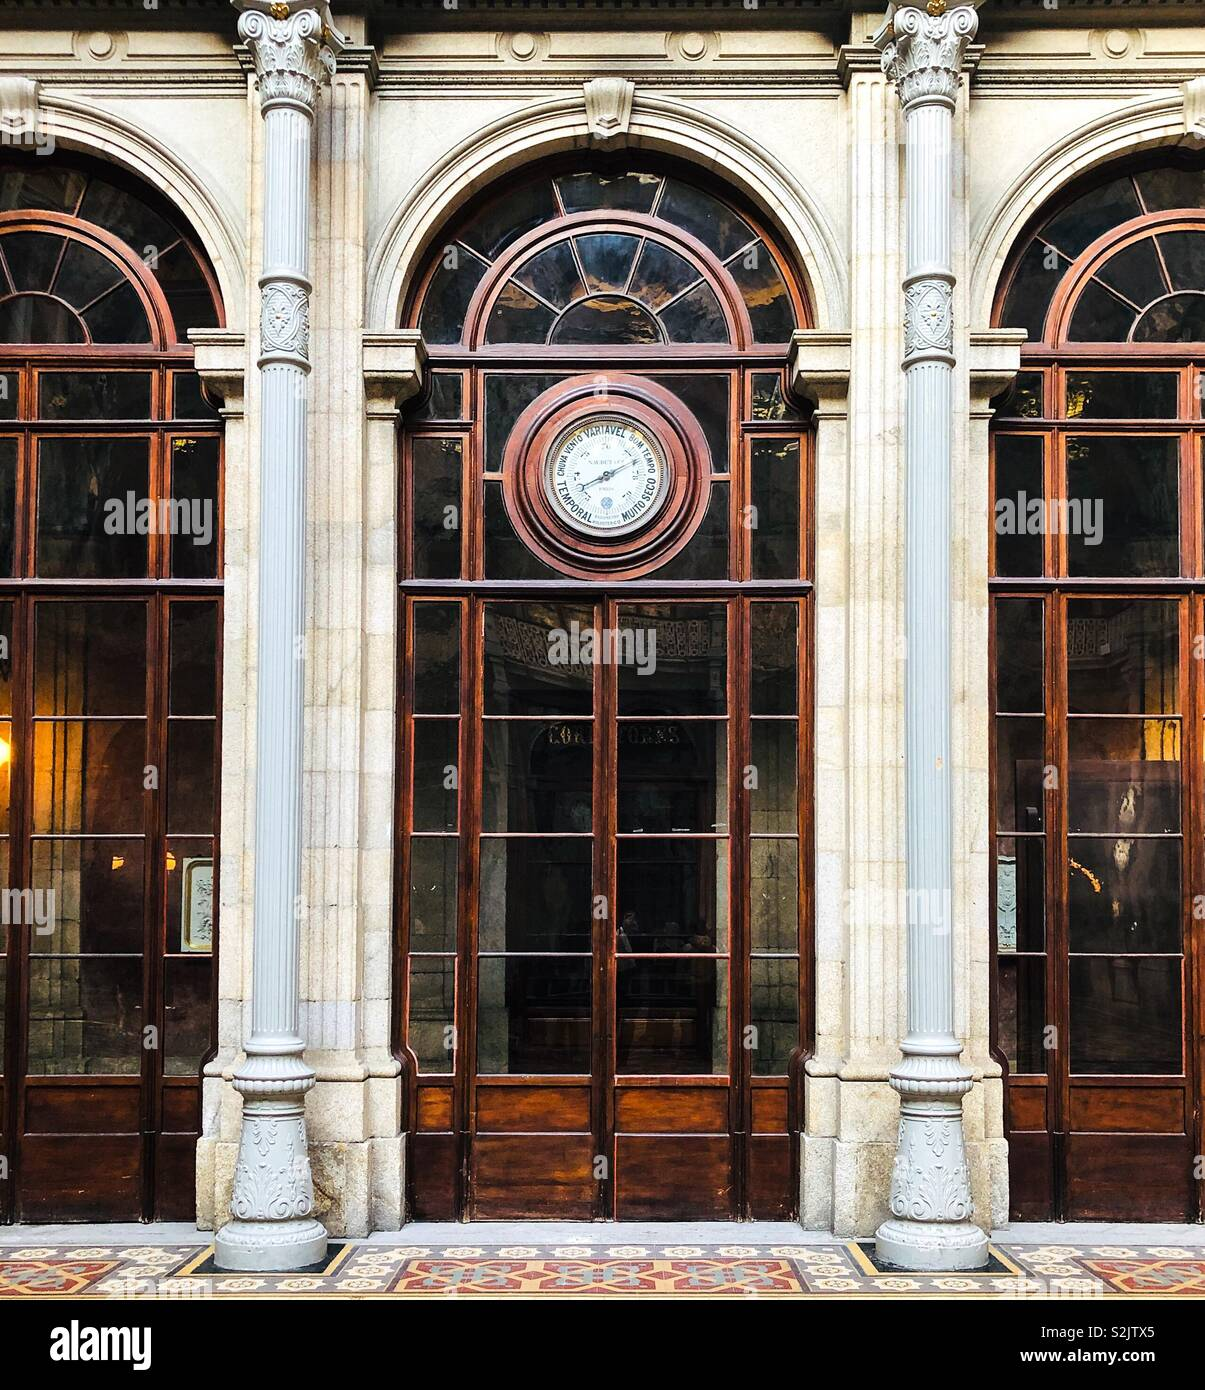 Tall, neoclassic, glazed doors with built in barometer above tiled floor, inside The Stock Exchange Bolsa Palace, at Infante D Henrique Sq, Porto, Portugal - Stock Image